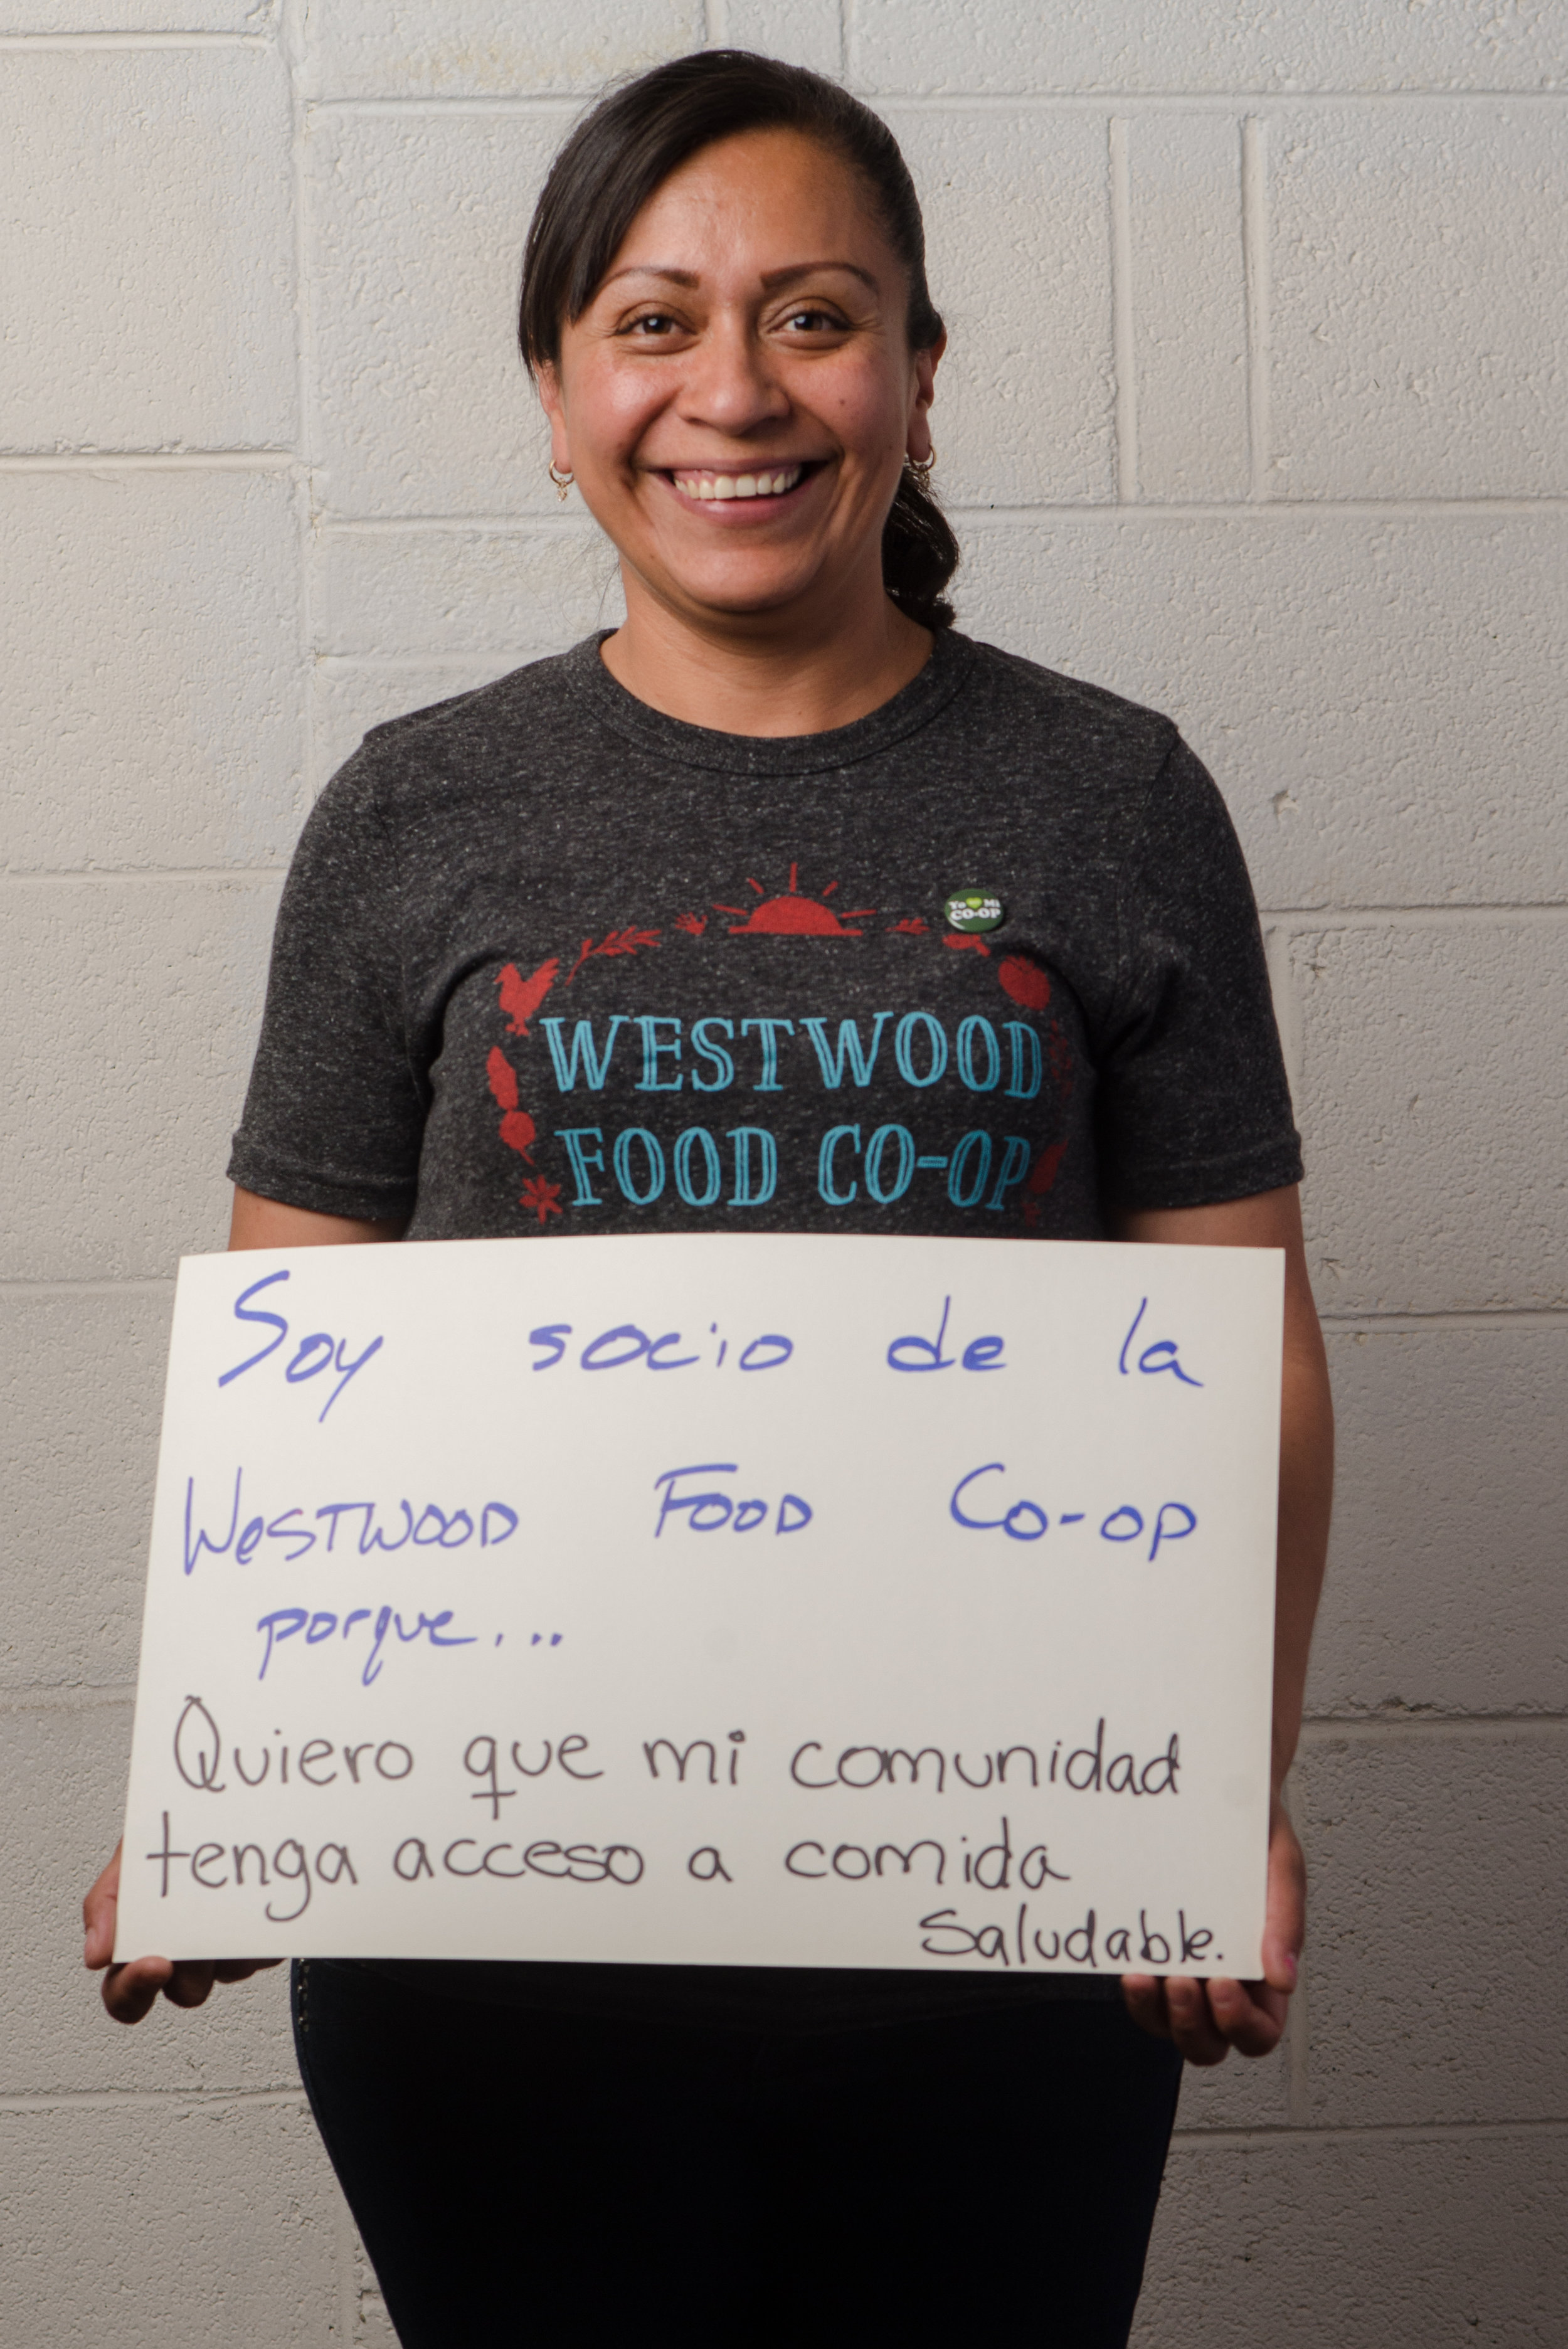 """I am a member of the Westwood Food Co-Op because I want my community to have access to healthy food."" - Yuridia Bahena Santana, Re:Own Program Manager and Member of the Westwood Food Co-Op."